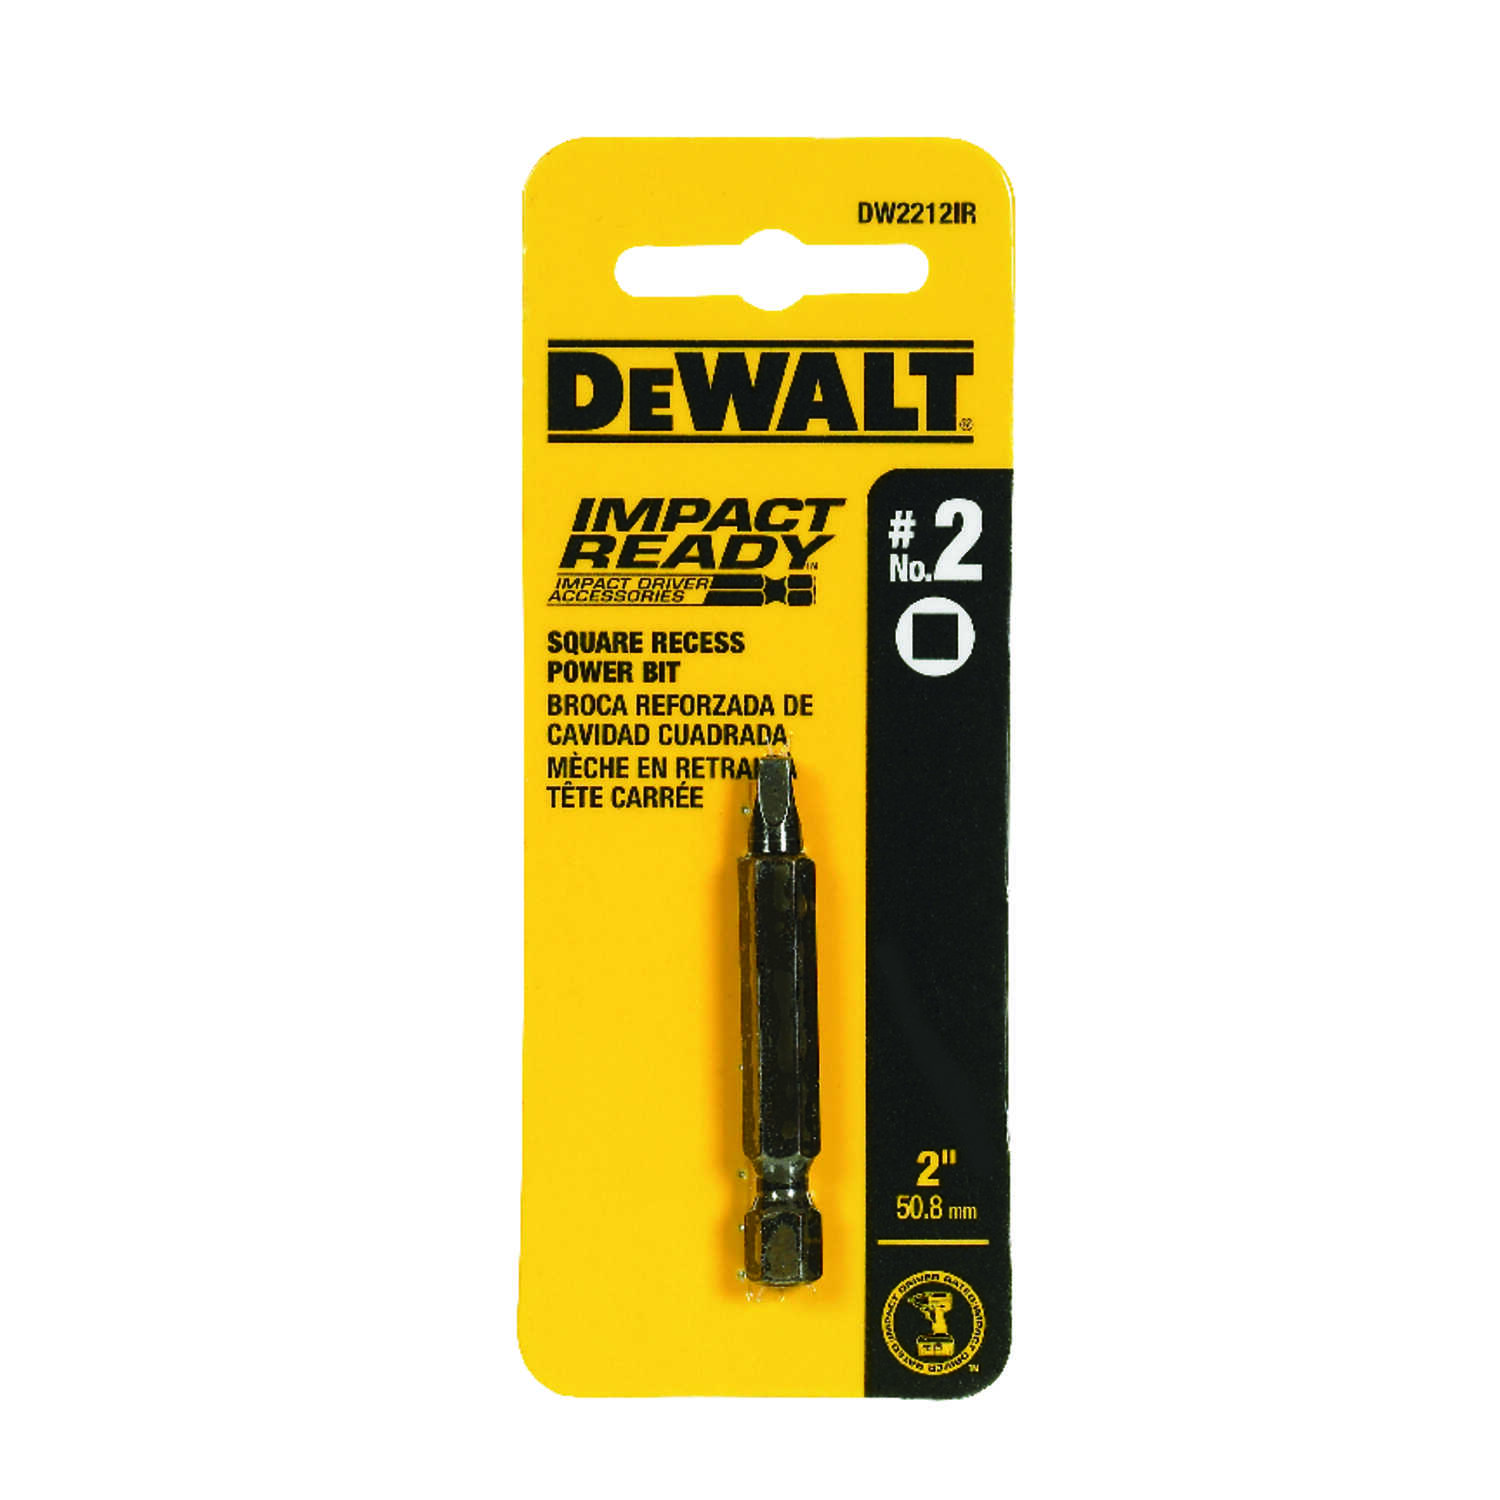 DeWalt  Impact Ready  #2 in.  x 2 in. L Square  Screwdriver Bit  Black Oxide  1 pc. 1/4 in.